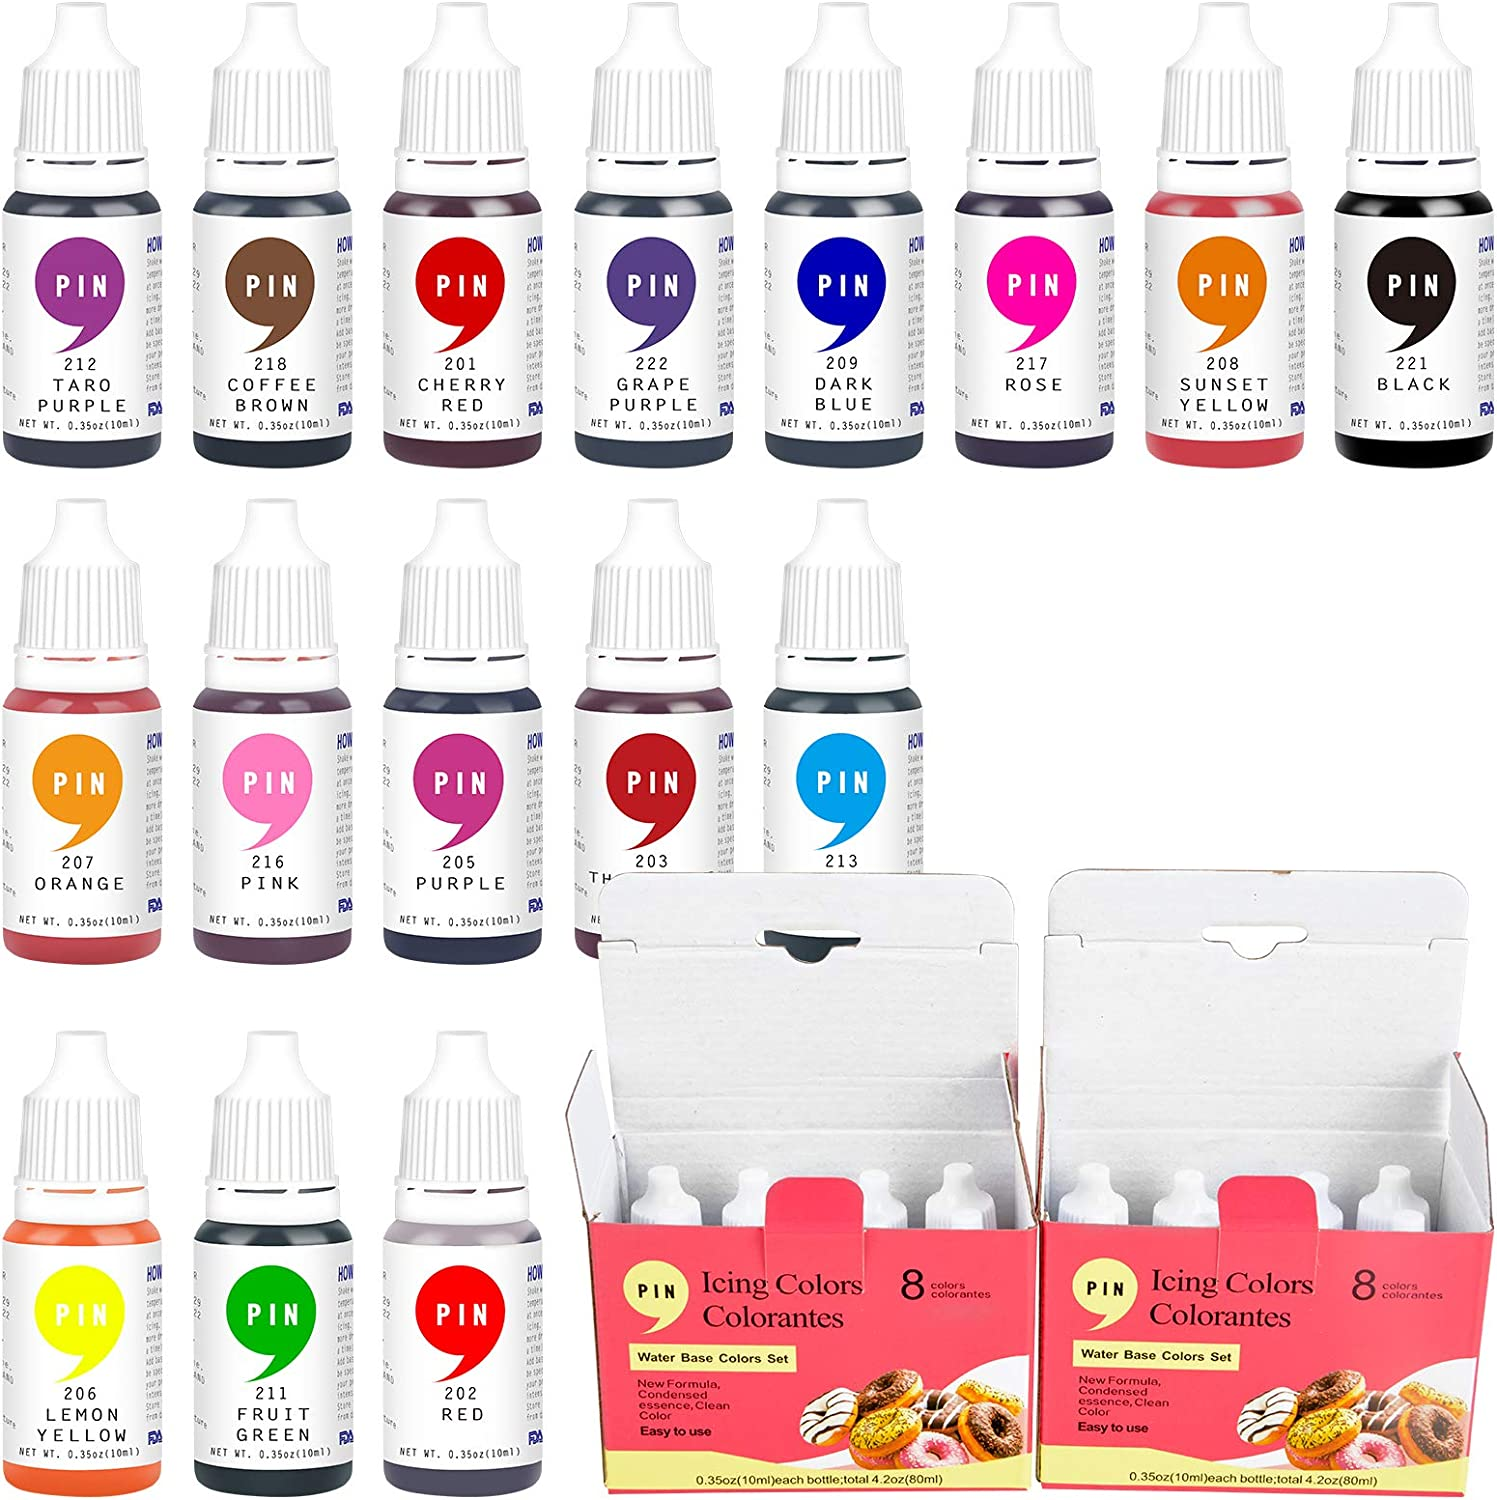 JIUPIN Food Color - 16 Color Vibrant Cake Food Coloring Set for Baking, Decorating, Fondant and Cooking - Upgraded Liquid Concentrated Icing Food Color Dye for Slime Making, DIY Crafts